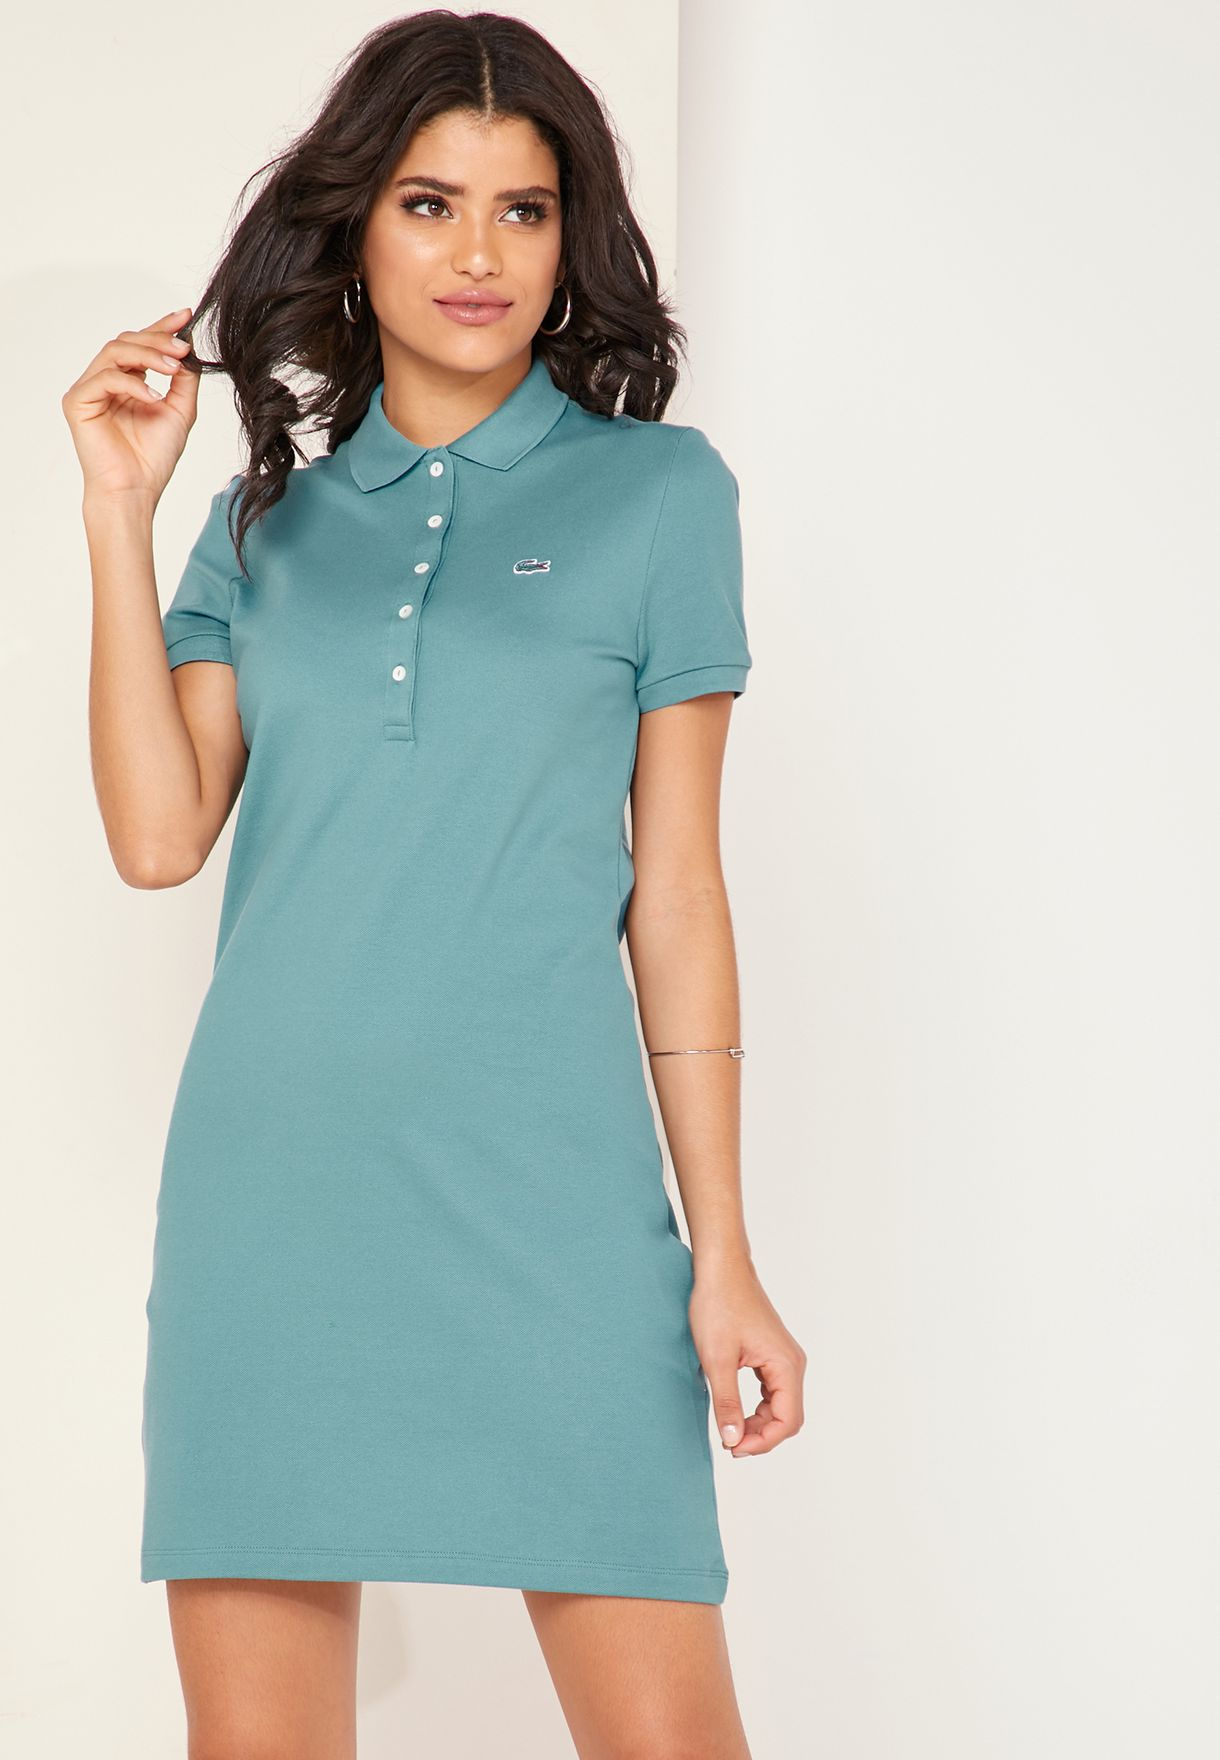 4476b20d5fa Shop Lacoste green Logo Polo T-Shirt Dress EF8470 for Women in UAE ...